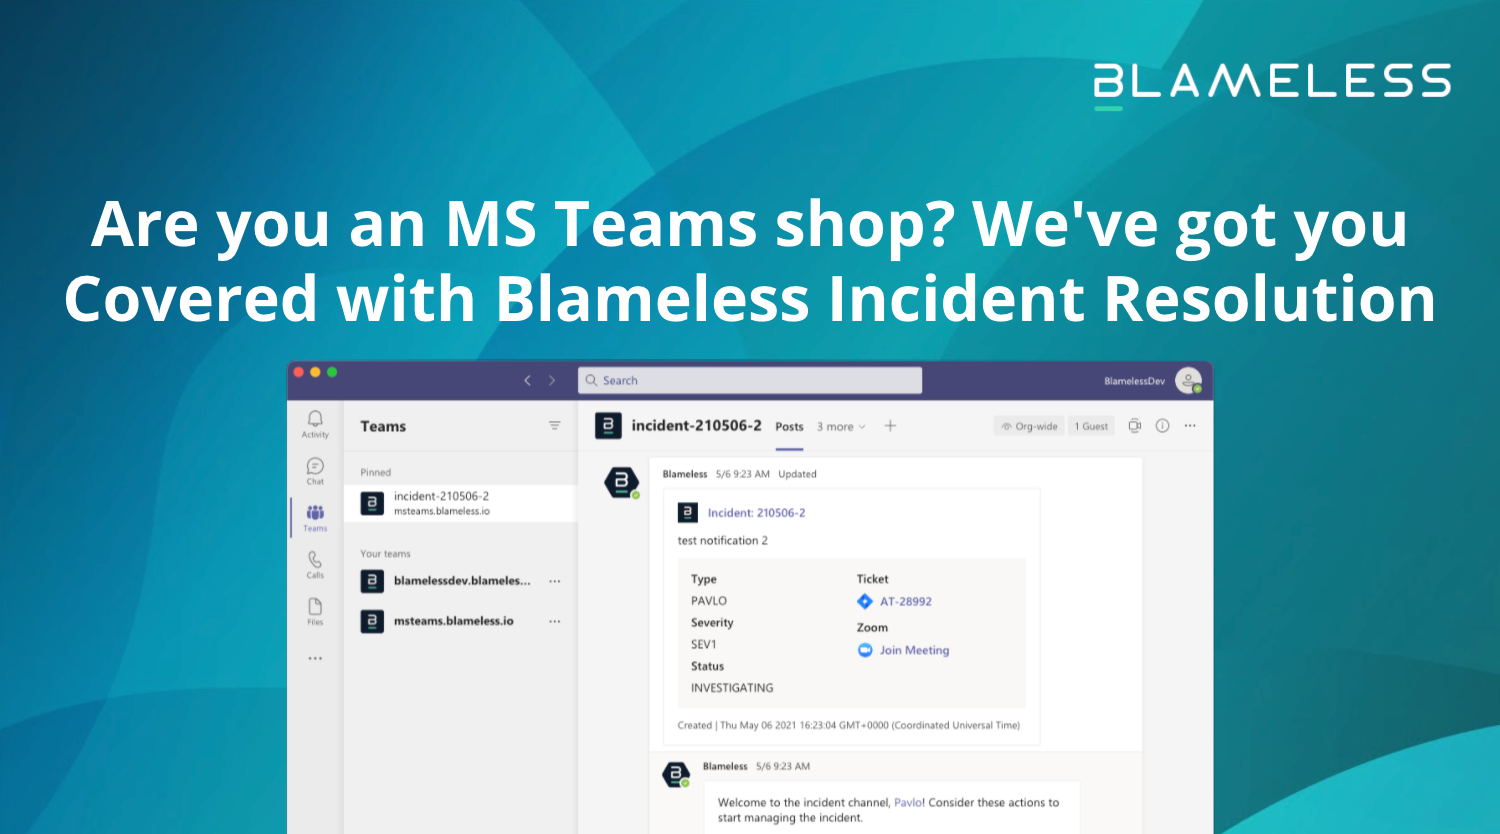 Are you an MS Teams shop? We've got you Covered with Blameless Incident Resolution